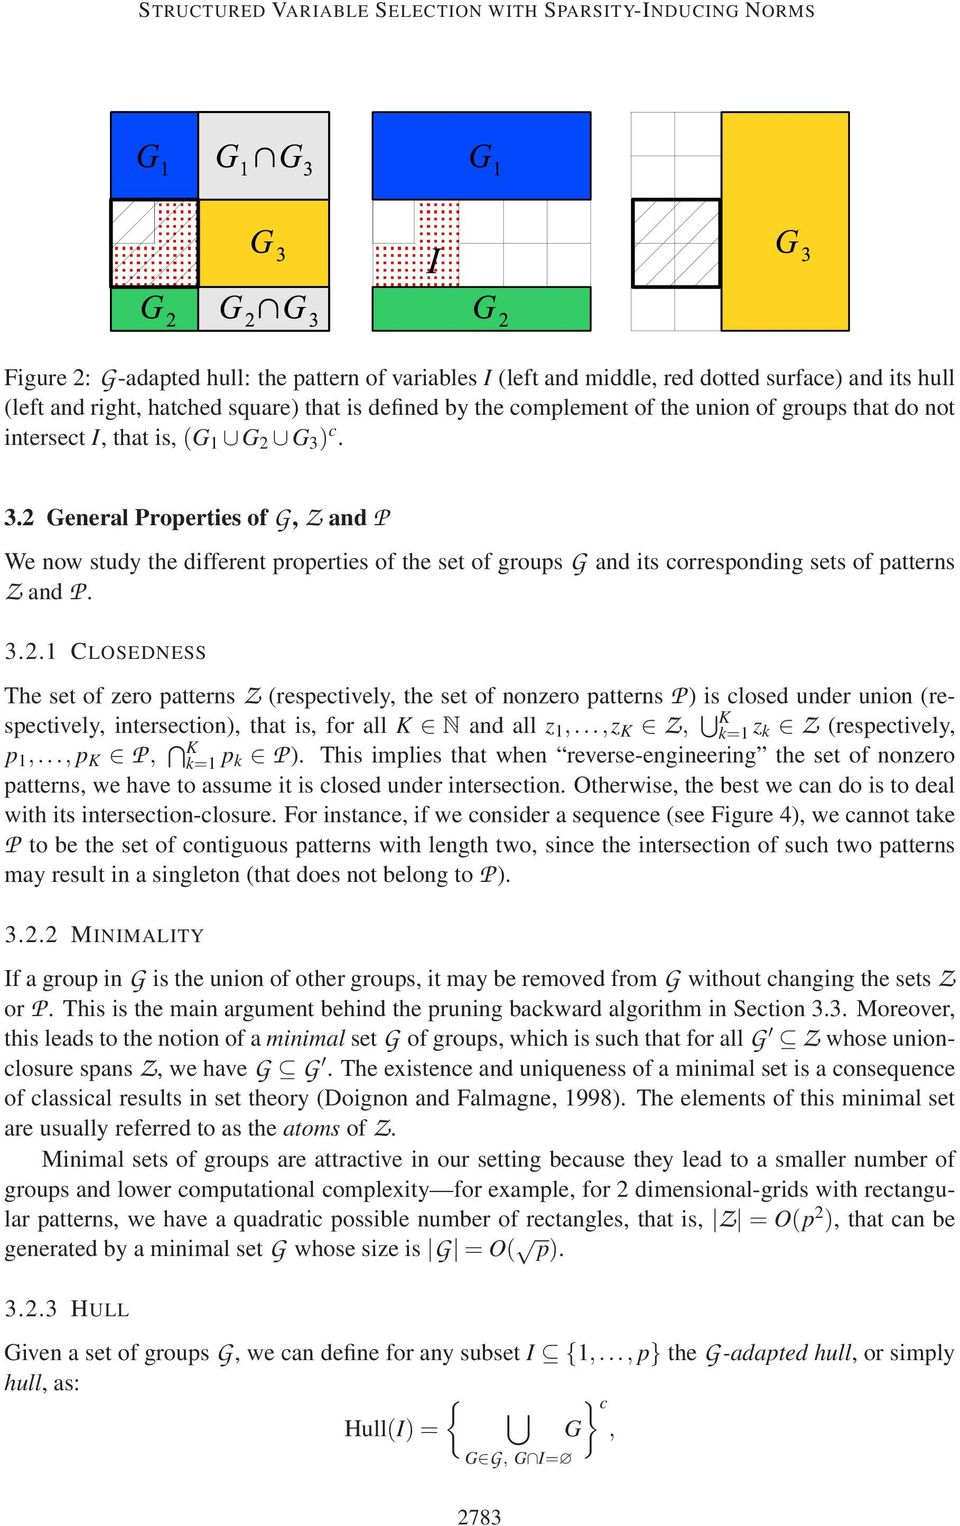 ) c. 3. General Properties ofg,z andp We now study the different properties of the set of groupsg and its corresponding sets of patterns Z andp. 3..1 CLOSEDNESS The set of zero patterns Z (respectively, the set of nonzero patterns P ) is closed under union (respectively, intersection), that is, for all K N and all z 1,.